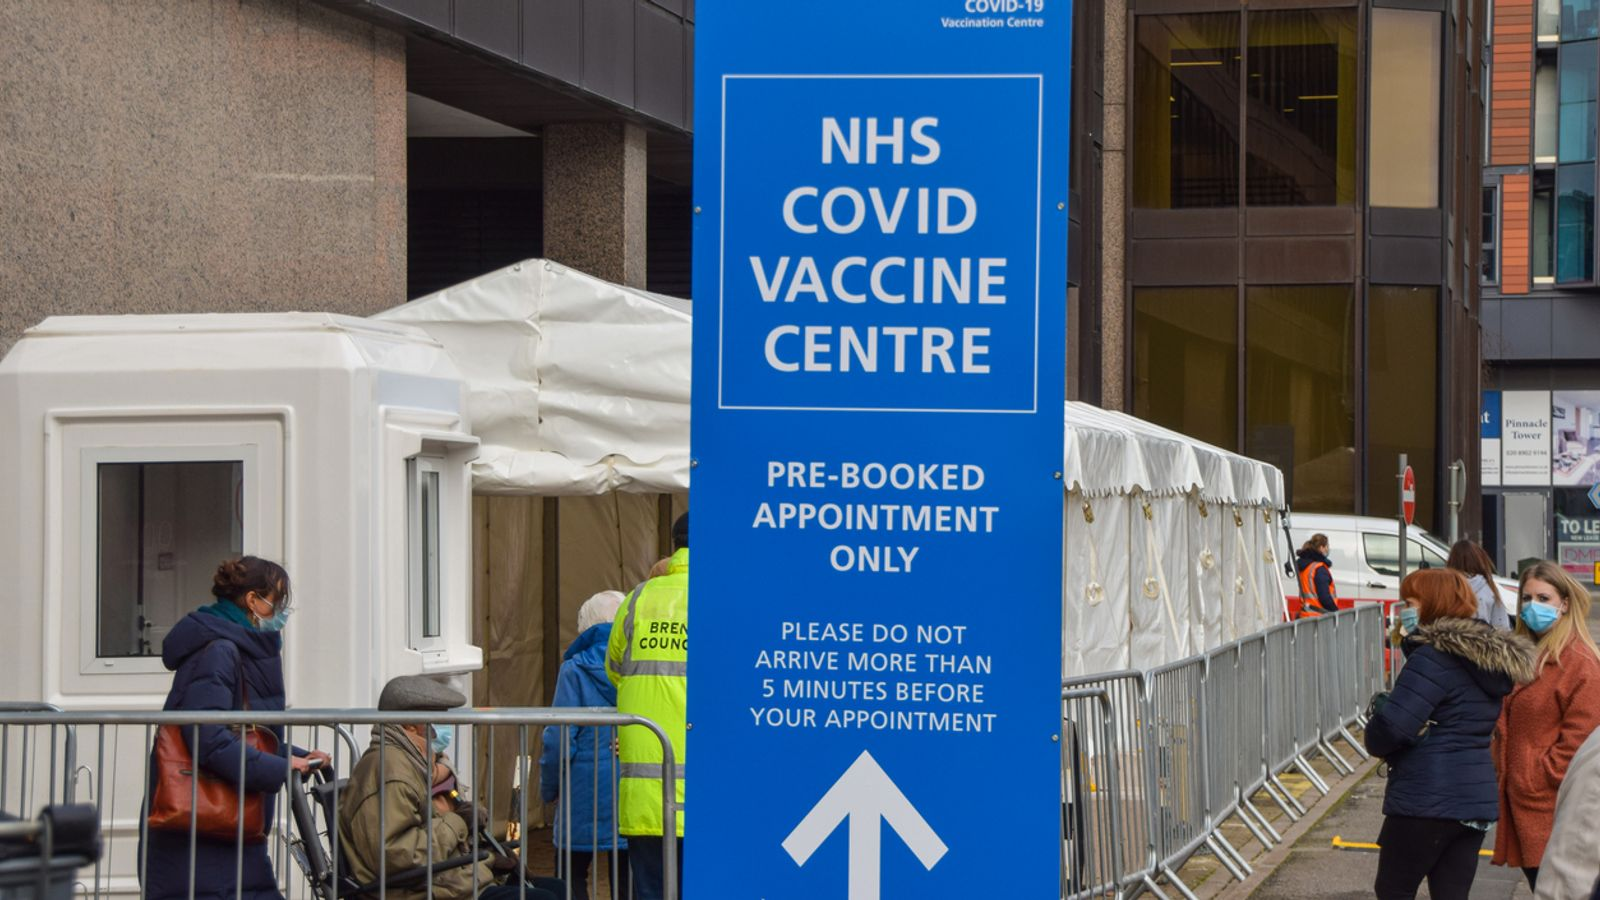 COVID-19: Vaccines minister 'confident' everyone over 50 will be offered coronavirus jab by May